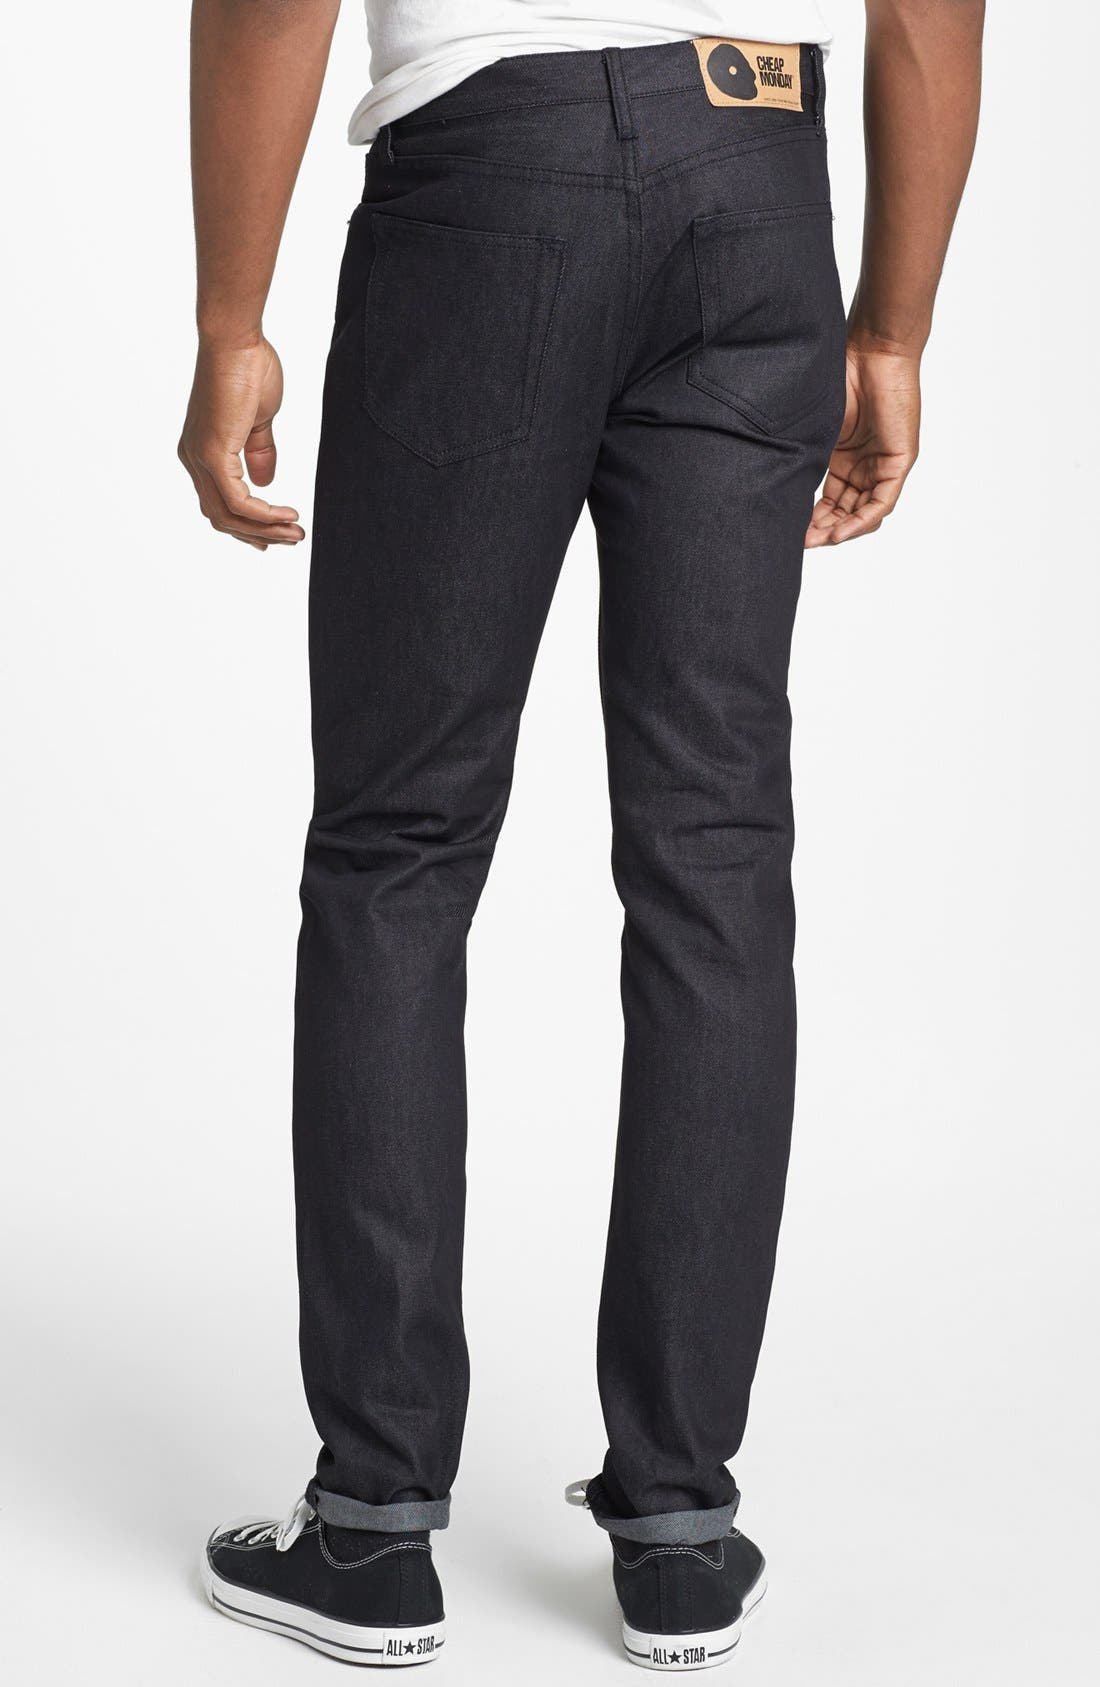 Alternate Image 1 Selected - Cheap Monday 'Four' Slim Straight Leg Jeans (Dry Black)